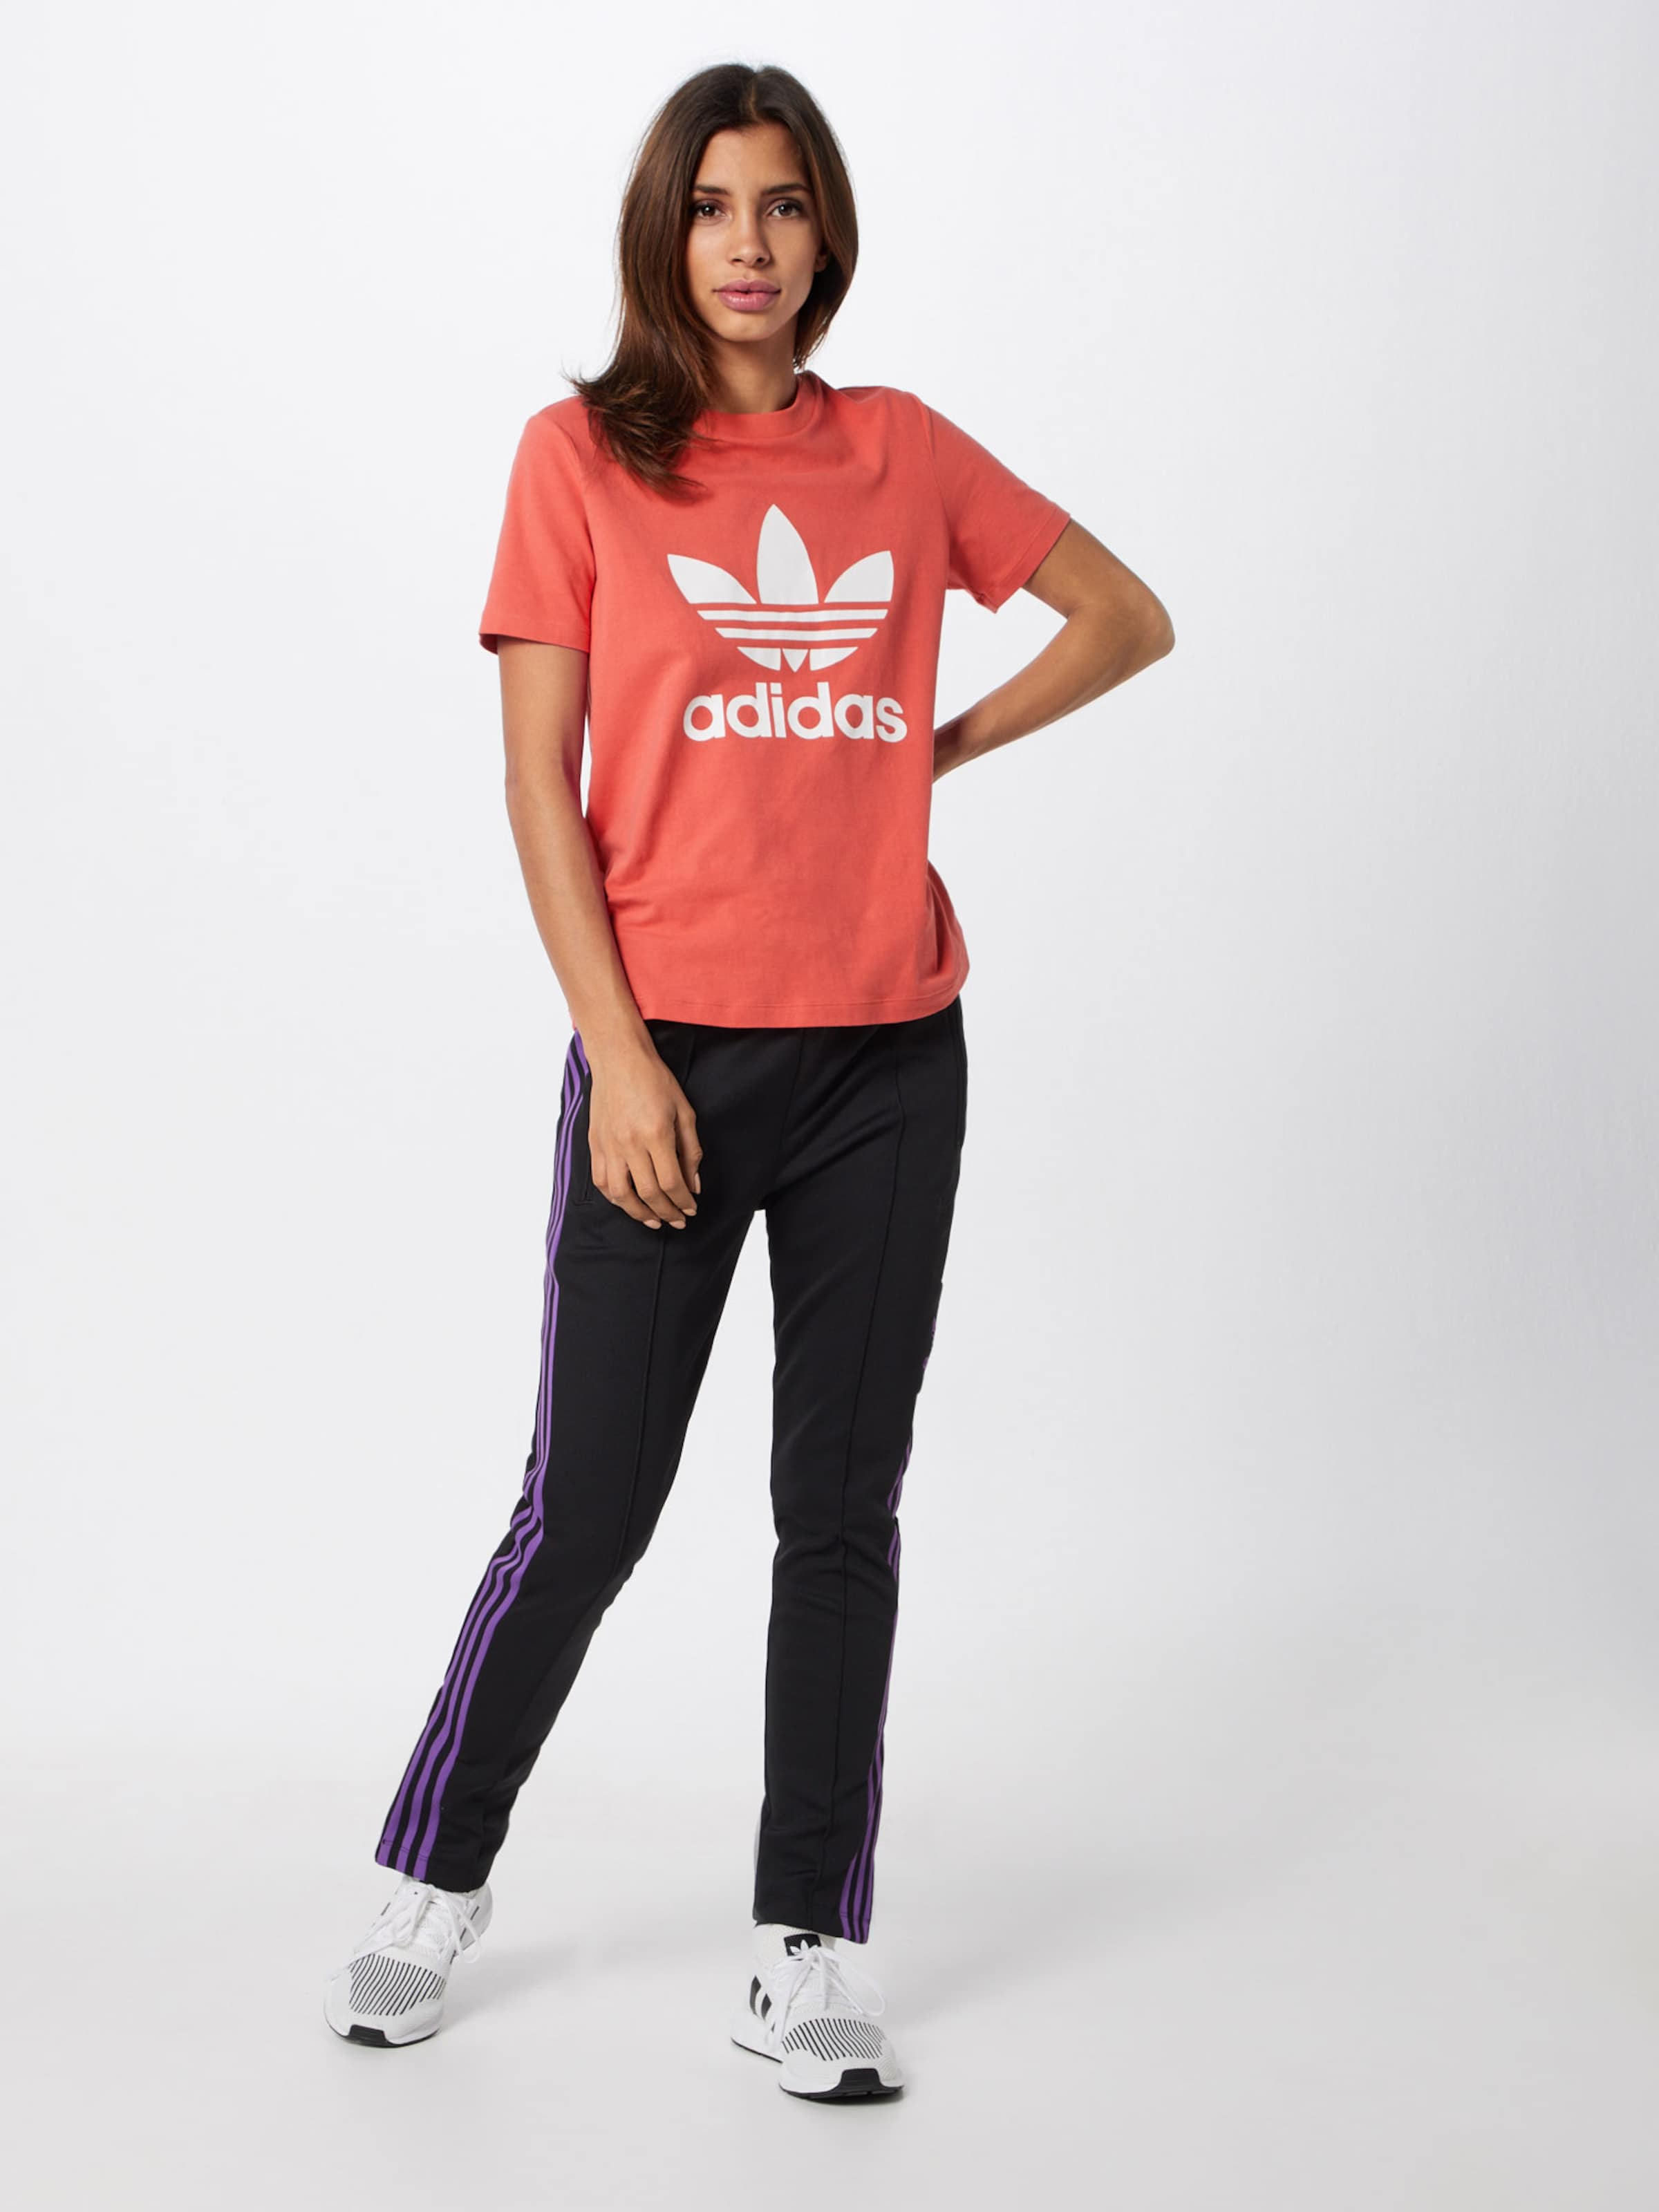 LilaSchwarz In 'track Originals Pants' Adidas Hose rdCxQBoeW